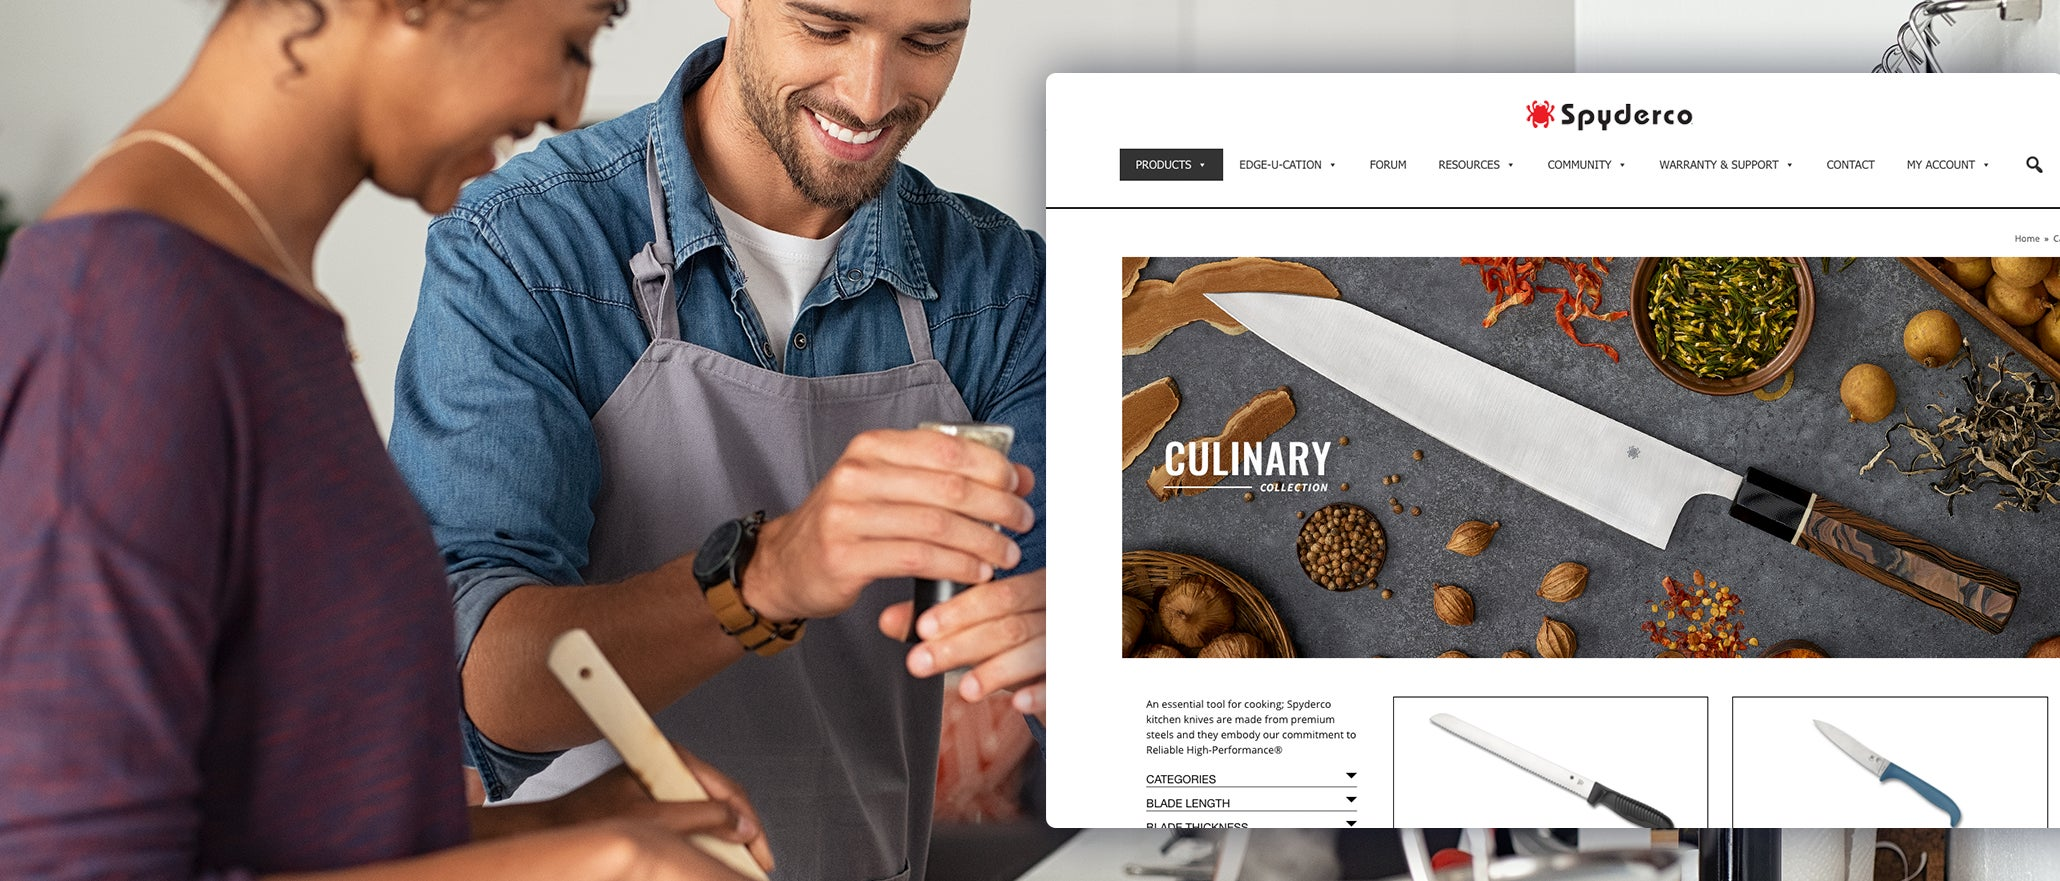 screenshot of Spyderco website and two people cooking